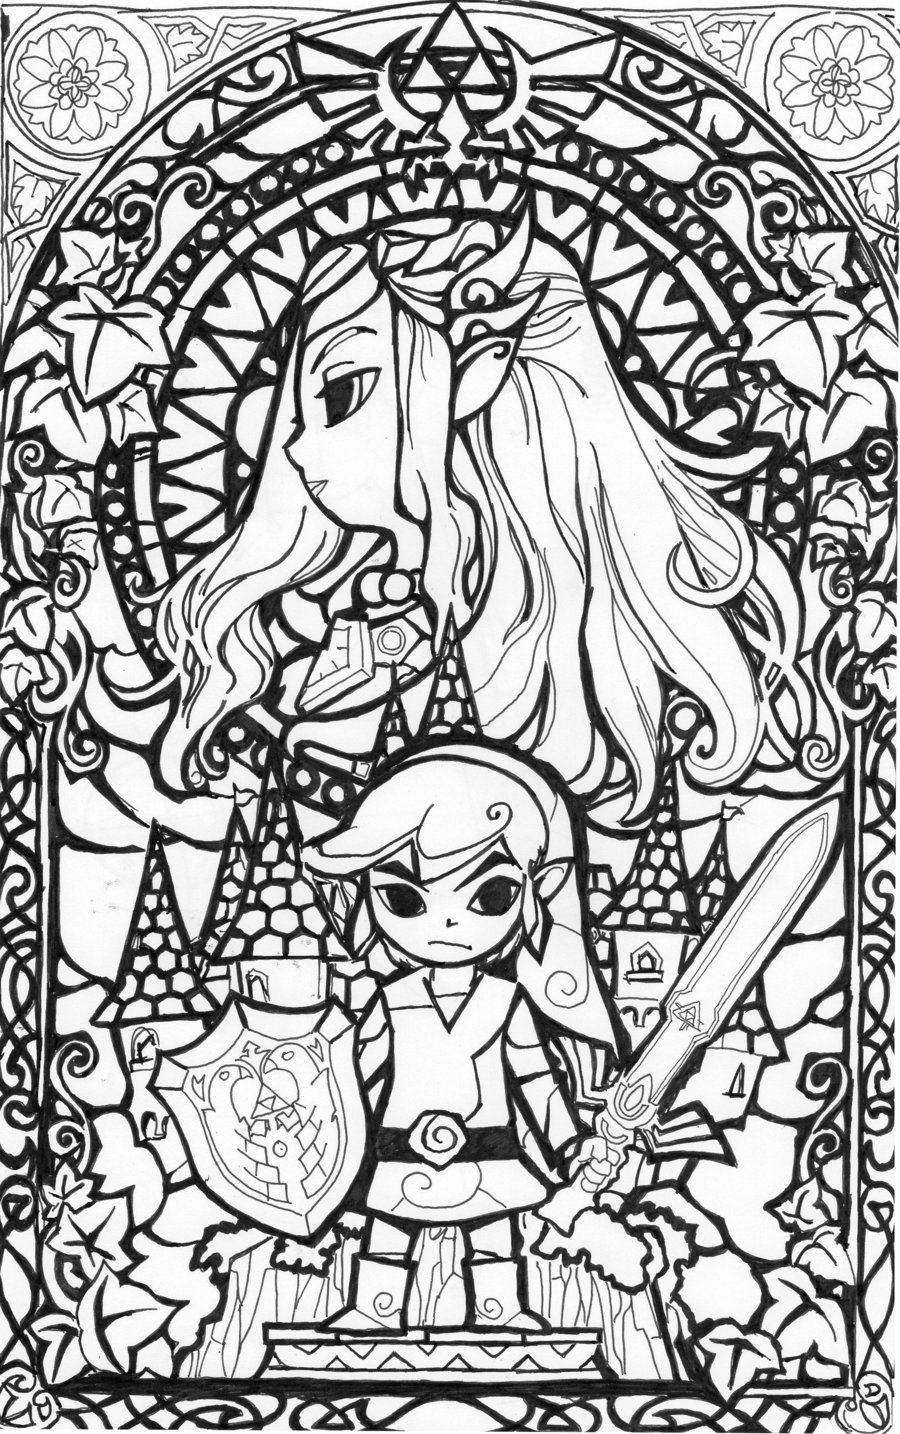 awesome stained glass zelda coloring page cant remember if you play jo